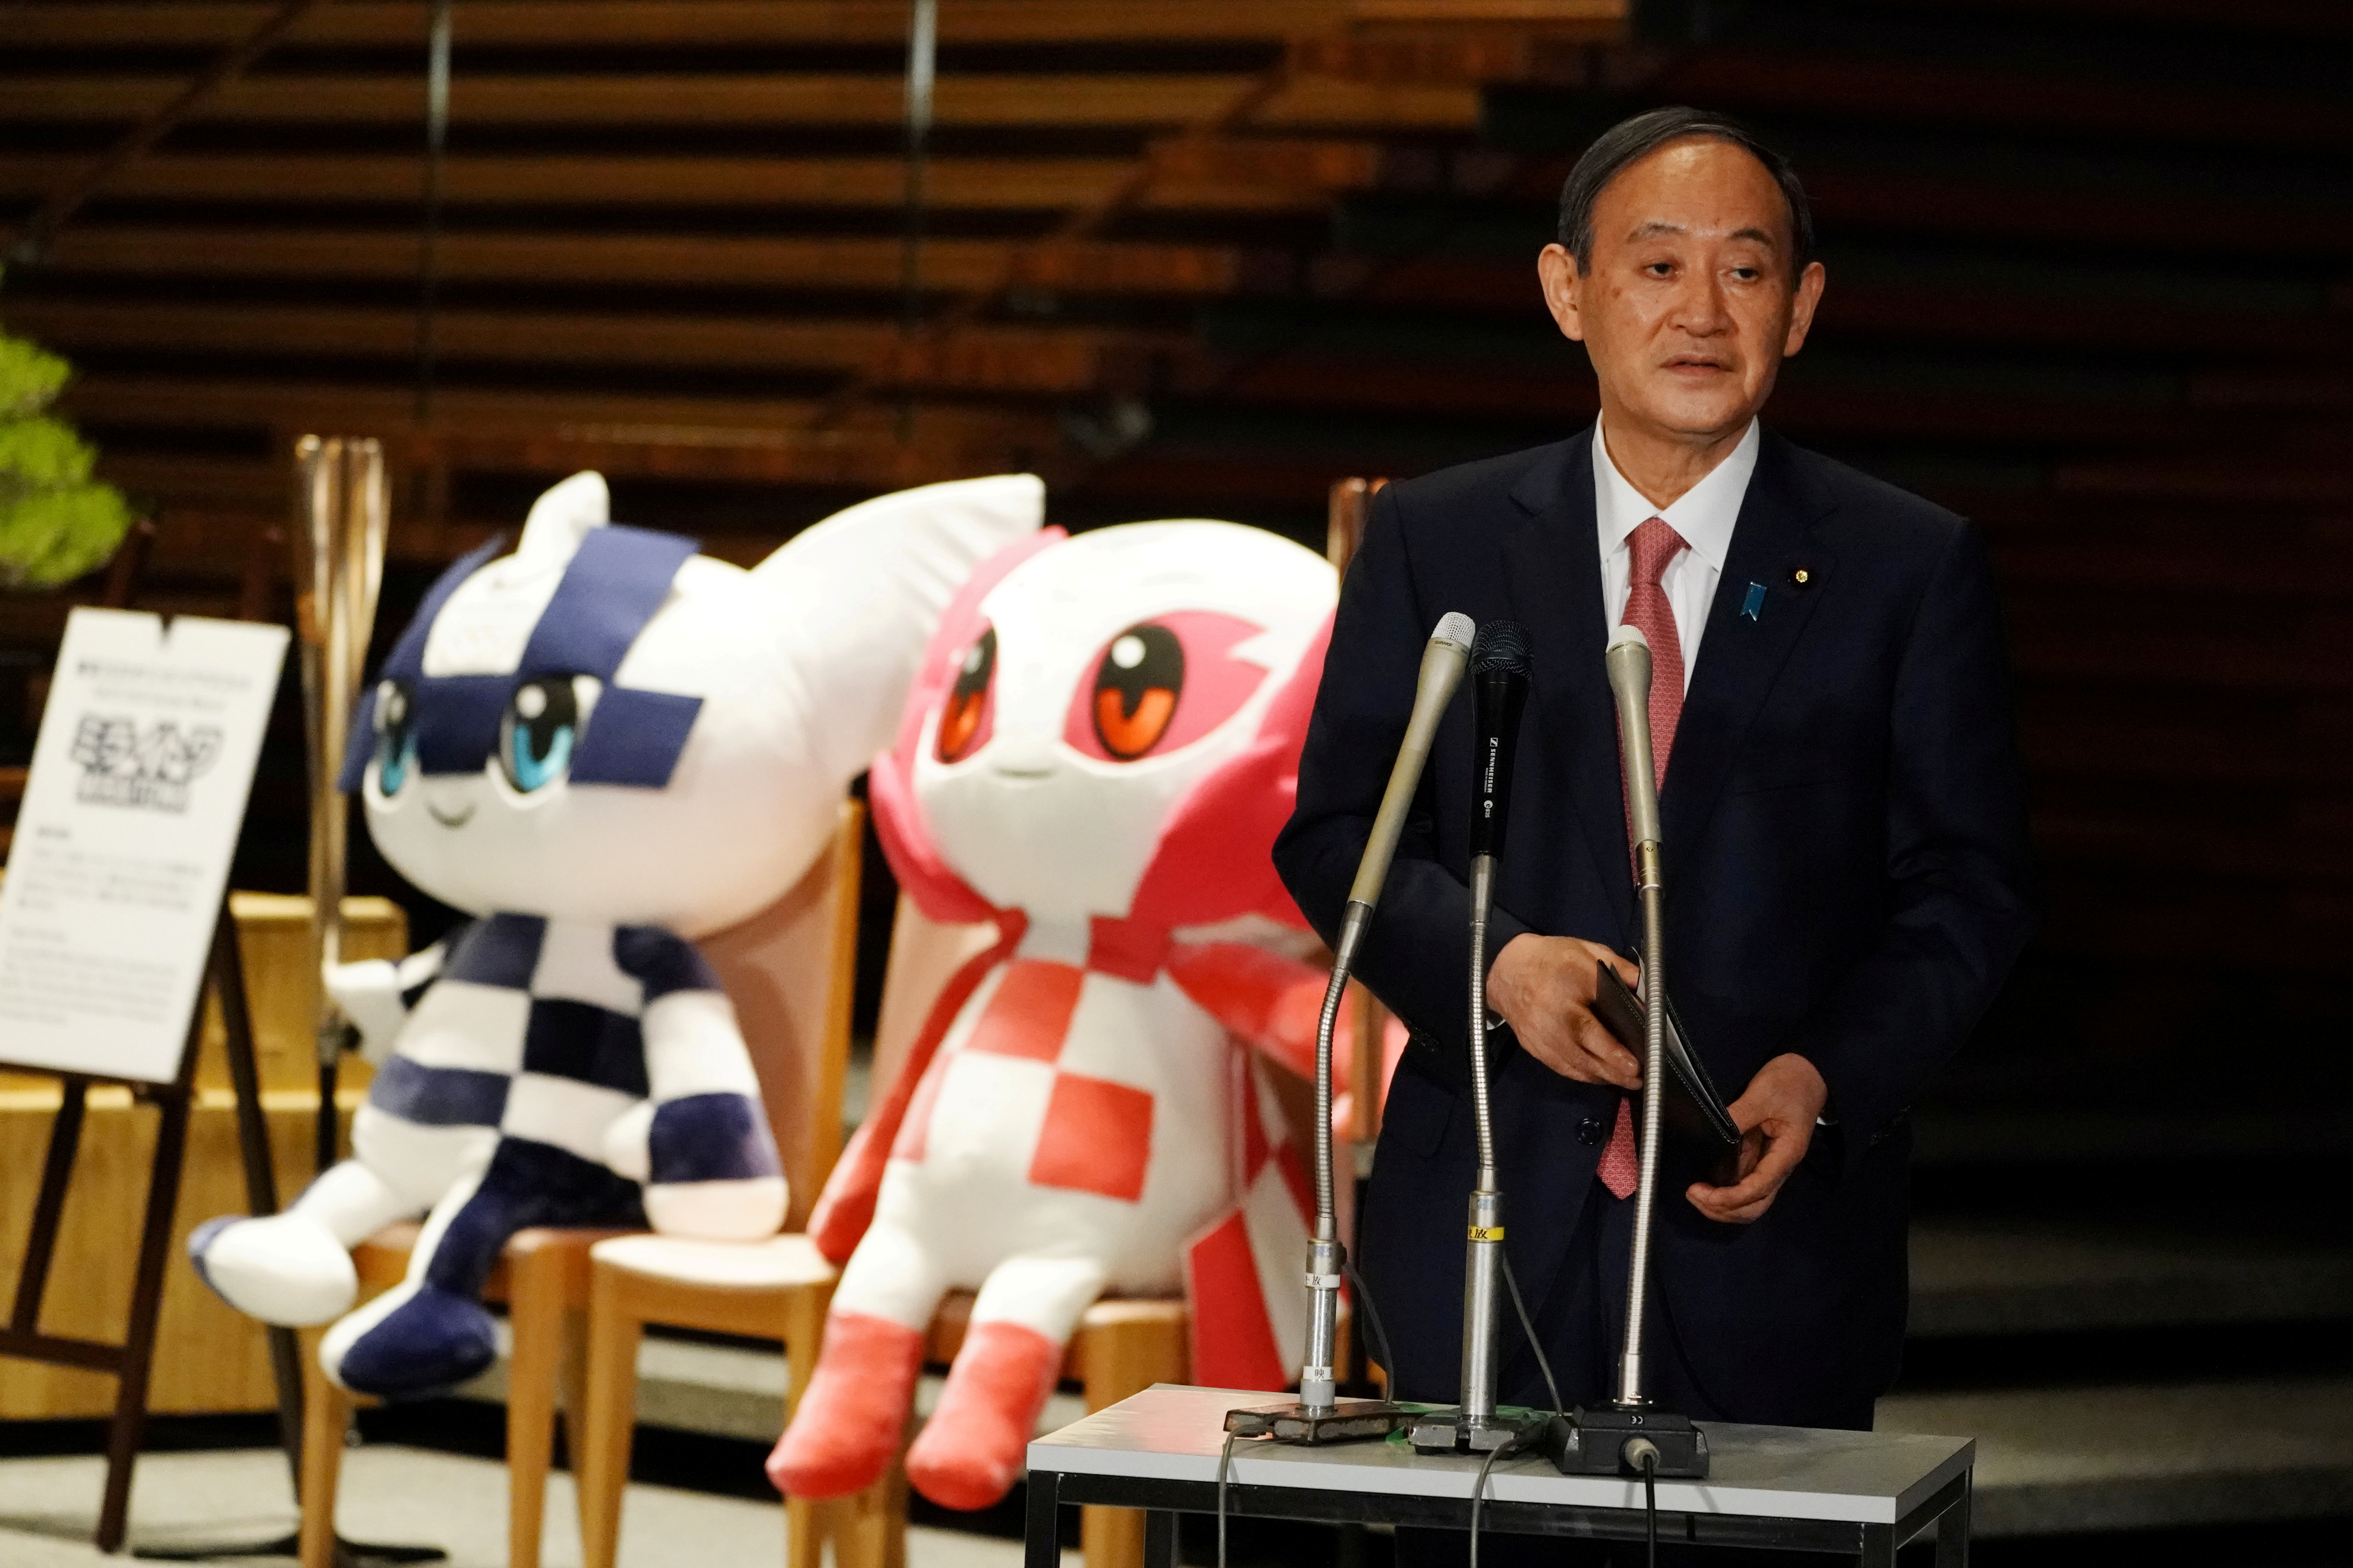 Japanese Prime Minister Yoshihide Suga, next to the mascots of Tokyo 2020 Olympic and Paralympic Games, speaks to media after announcing that Tokyo, Kyoto and Okinawa will be applied for pre-emergency status under a new prevention law during a government task force meeting at the prime minister's office in Tokyo, Japan April 9, 2021. Eugene Hoshiko/Pool via REUTESR/File Photo